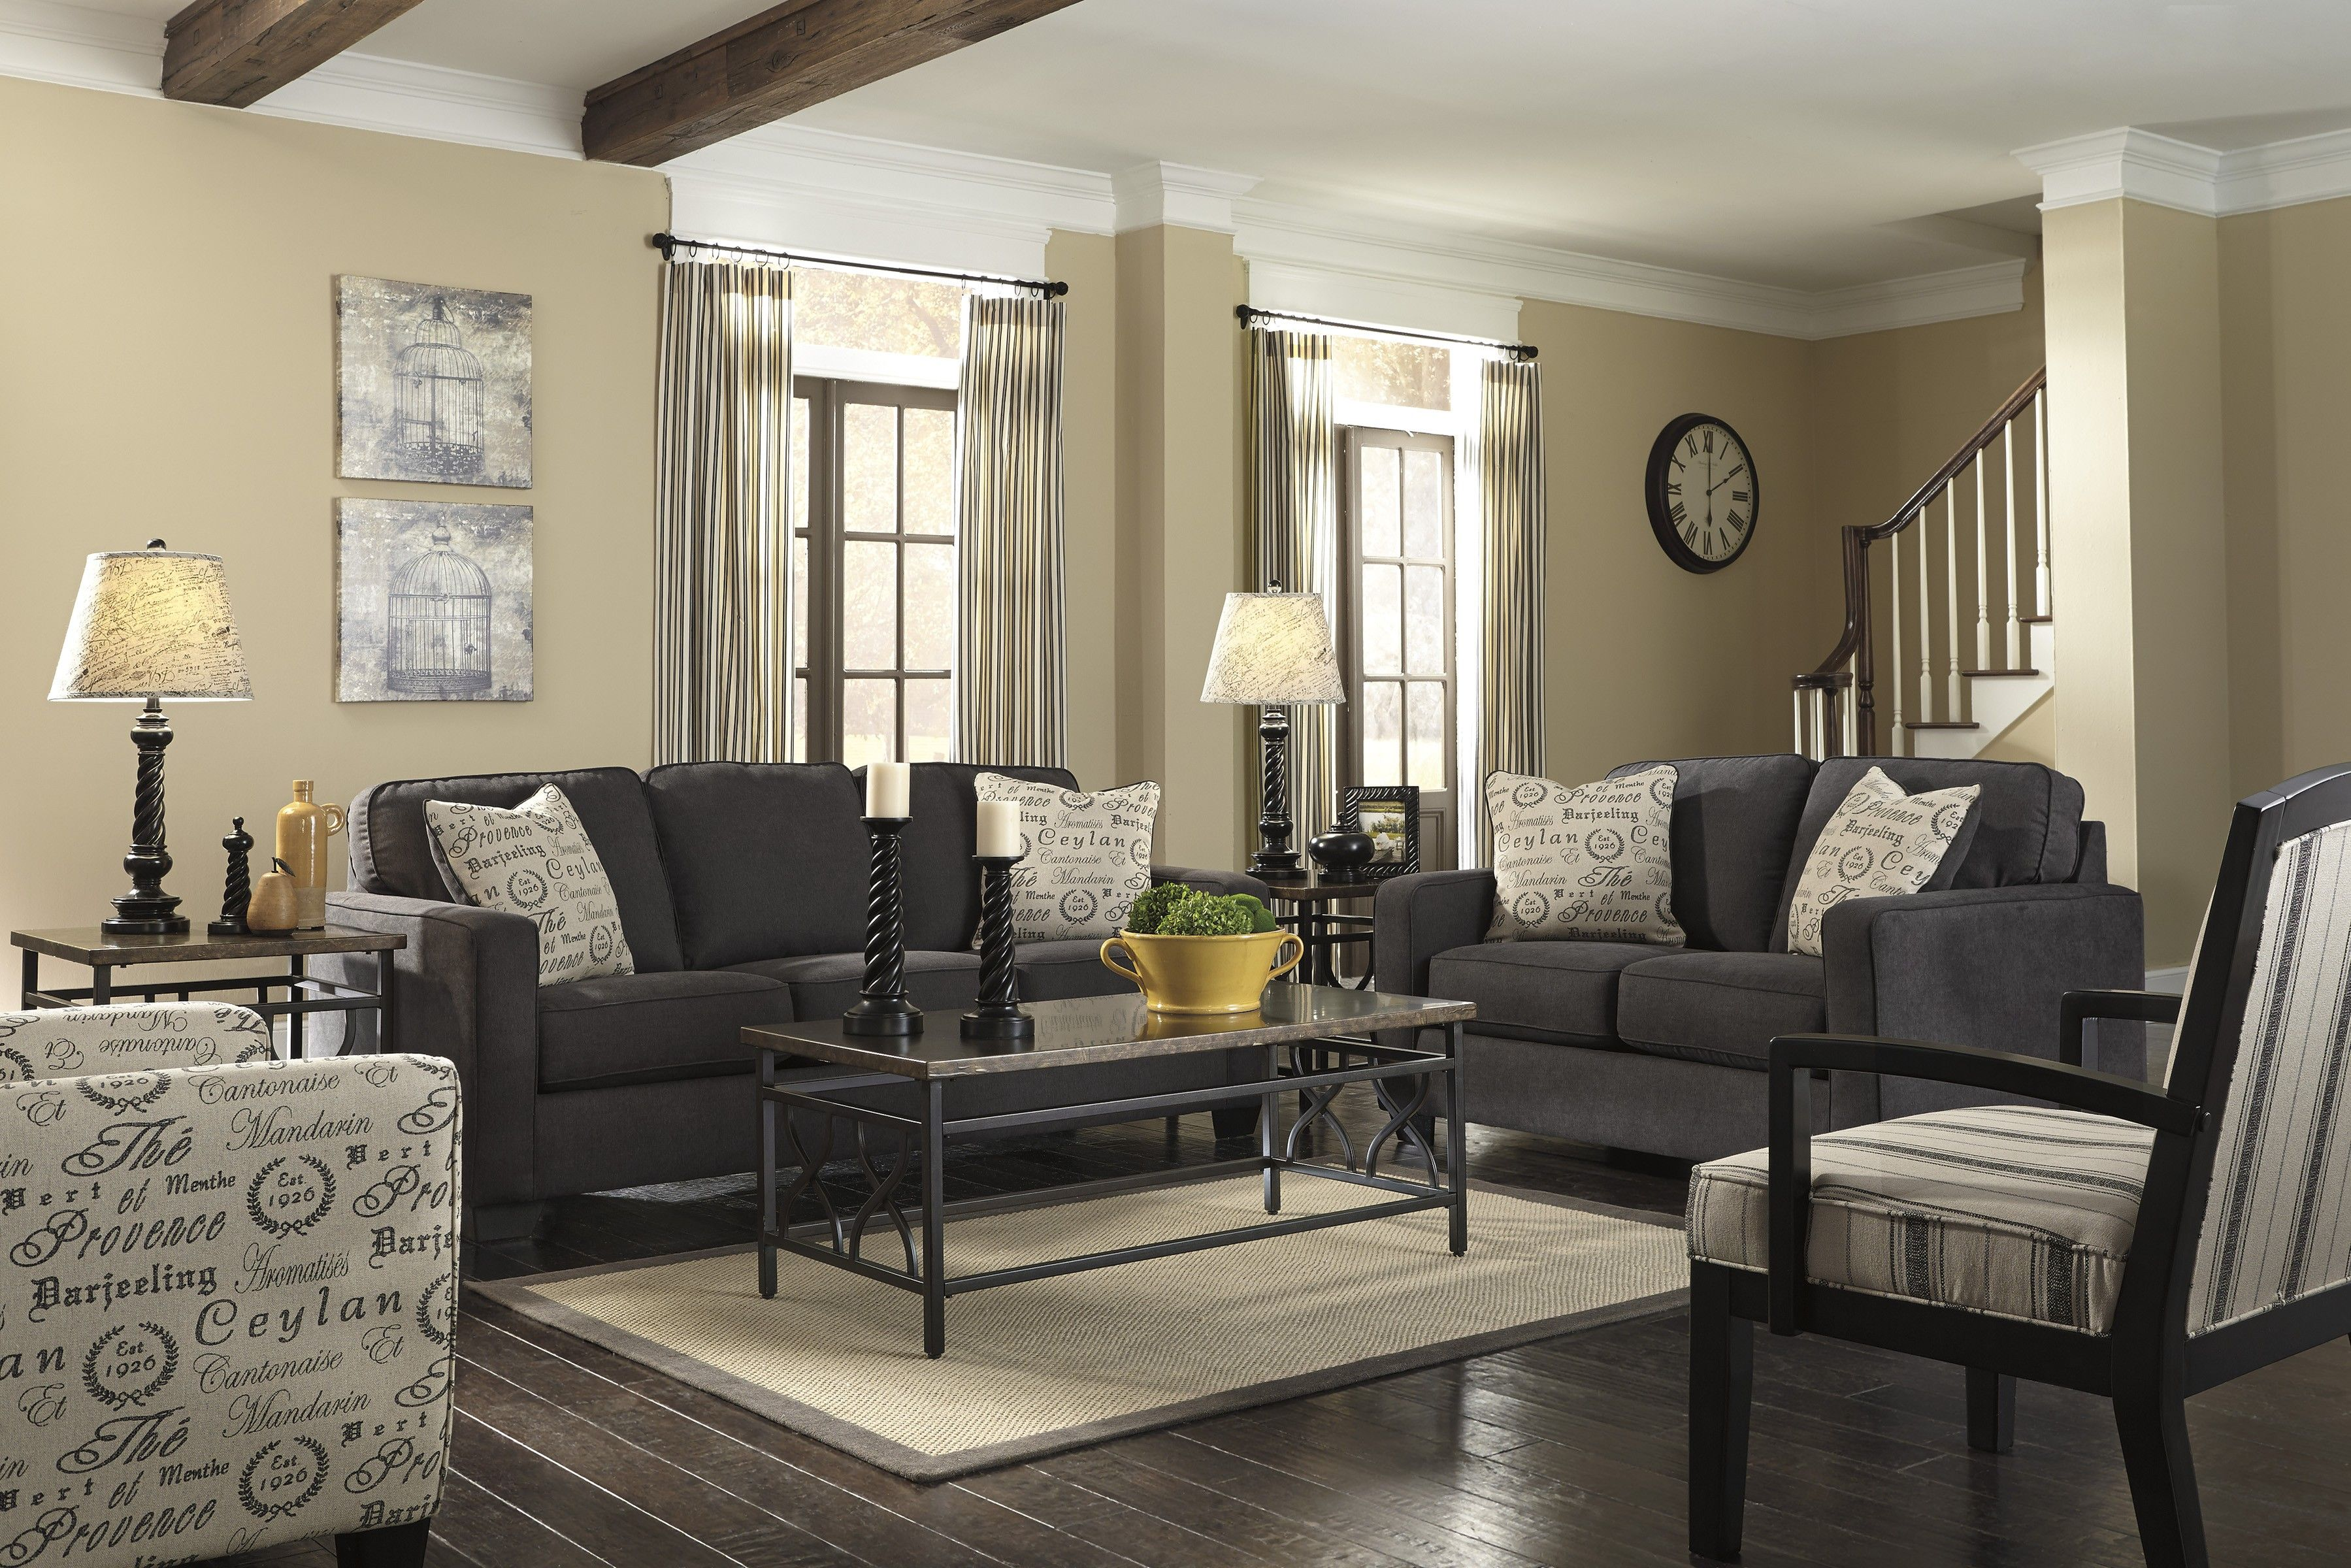 Dark Gray Couch Living Room.Light Gray Couch Living Room Ideas Laminate Wood